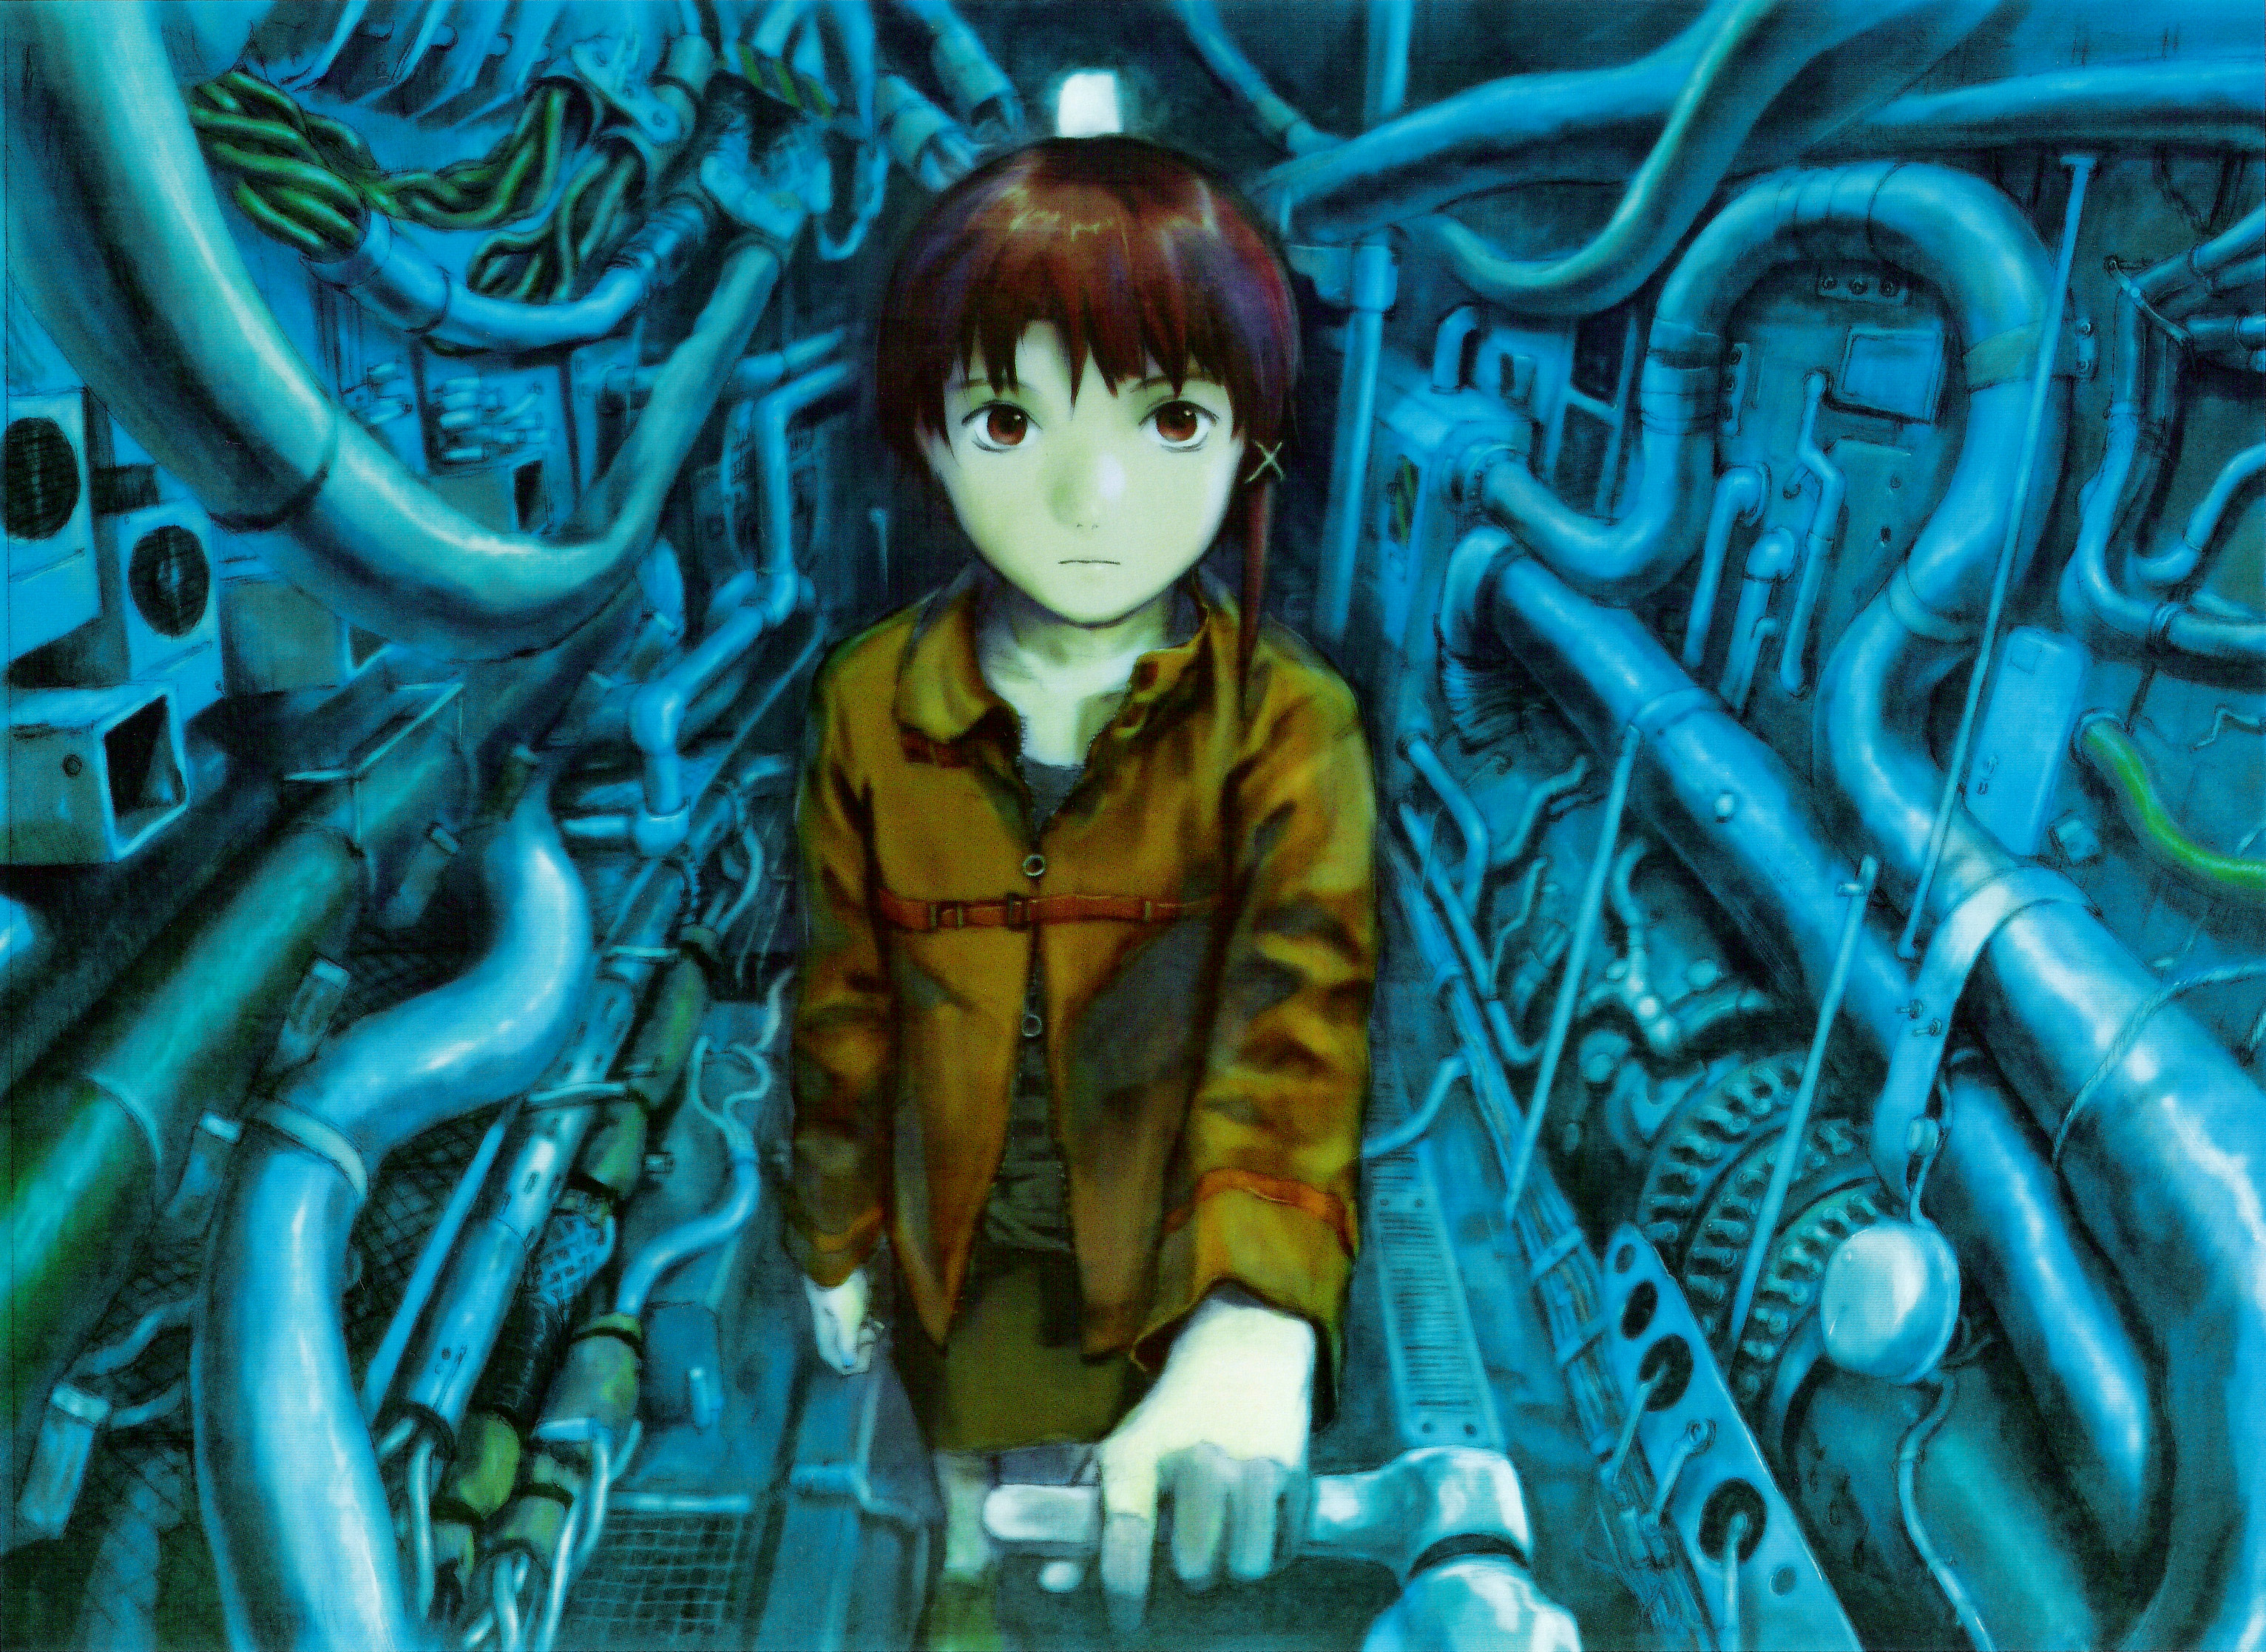 The Influences on Serial Experiments Lain | The Objective Opinion